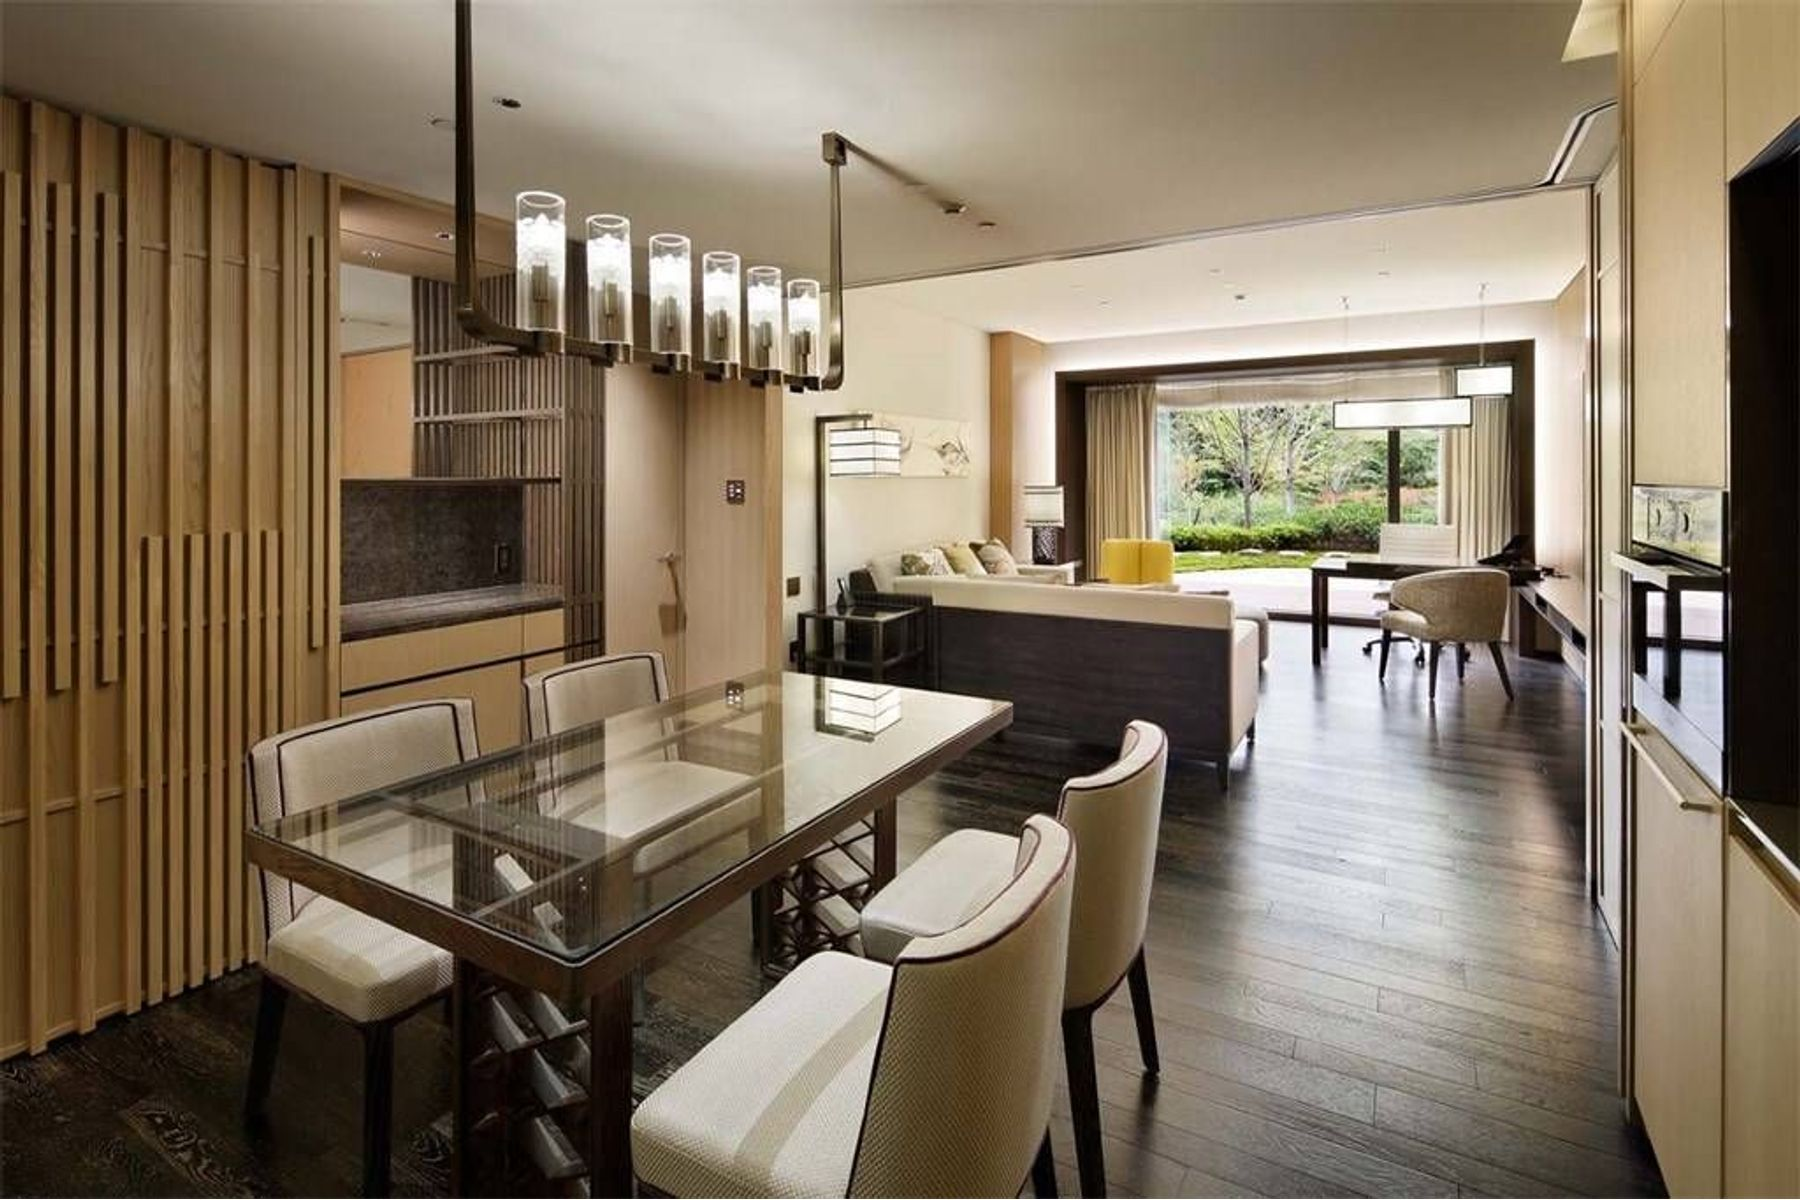 Condominiums for Sale at FOUR SEASONS HOTEL RESIDENCES KYOTO Higashiyama Other Japan, Other Areas In Japan 605-0932 Japan